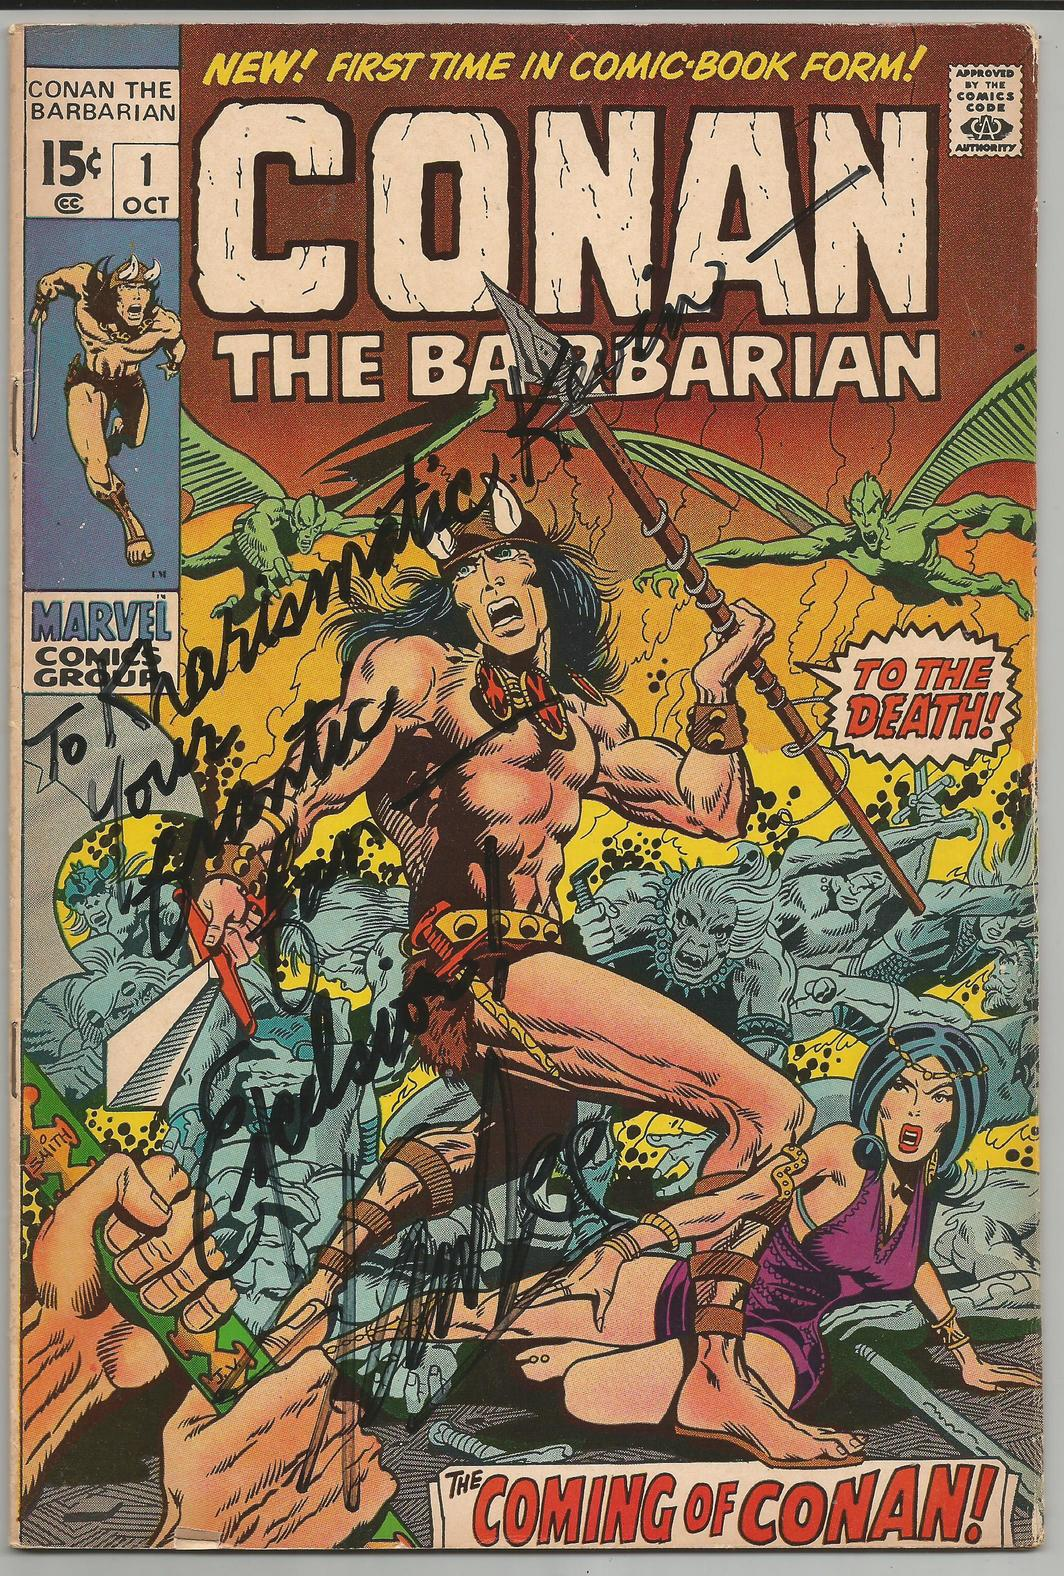 Kevin Eastman's copy of Conan the Barbarian #1, signed by Stan Lee